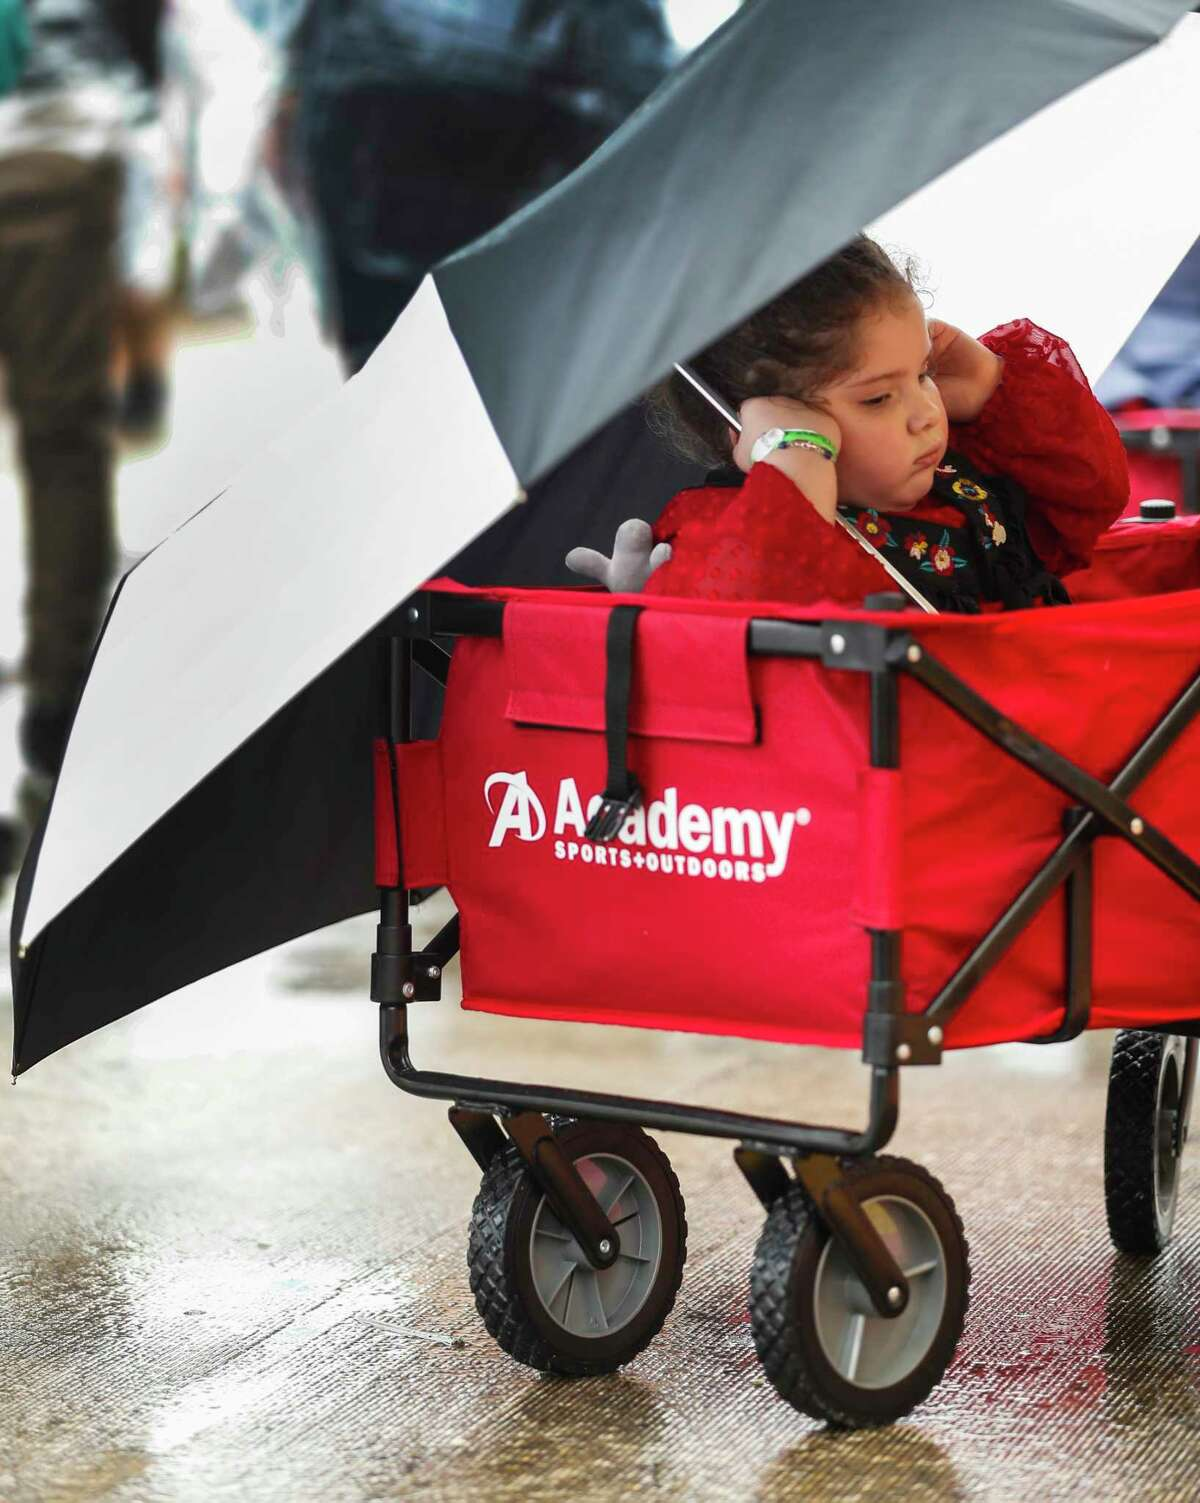 Lola Shelly, 4, covers up against the rain as she road in a cart with her family during the Houston Livestock Show and Rodeo at NRG Park, Wednesday, March 13, 2019, in Houston.